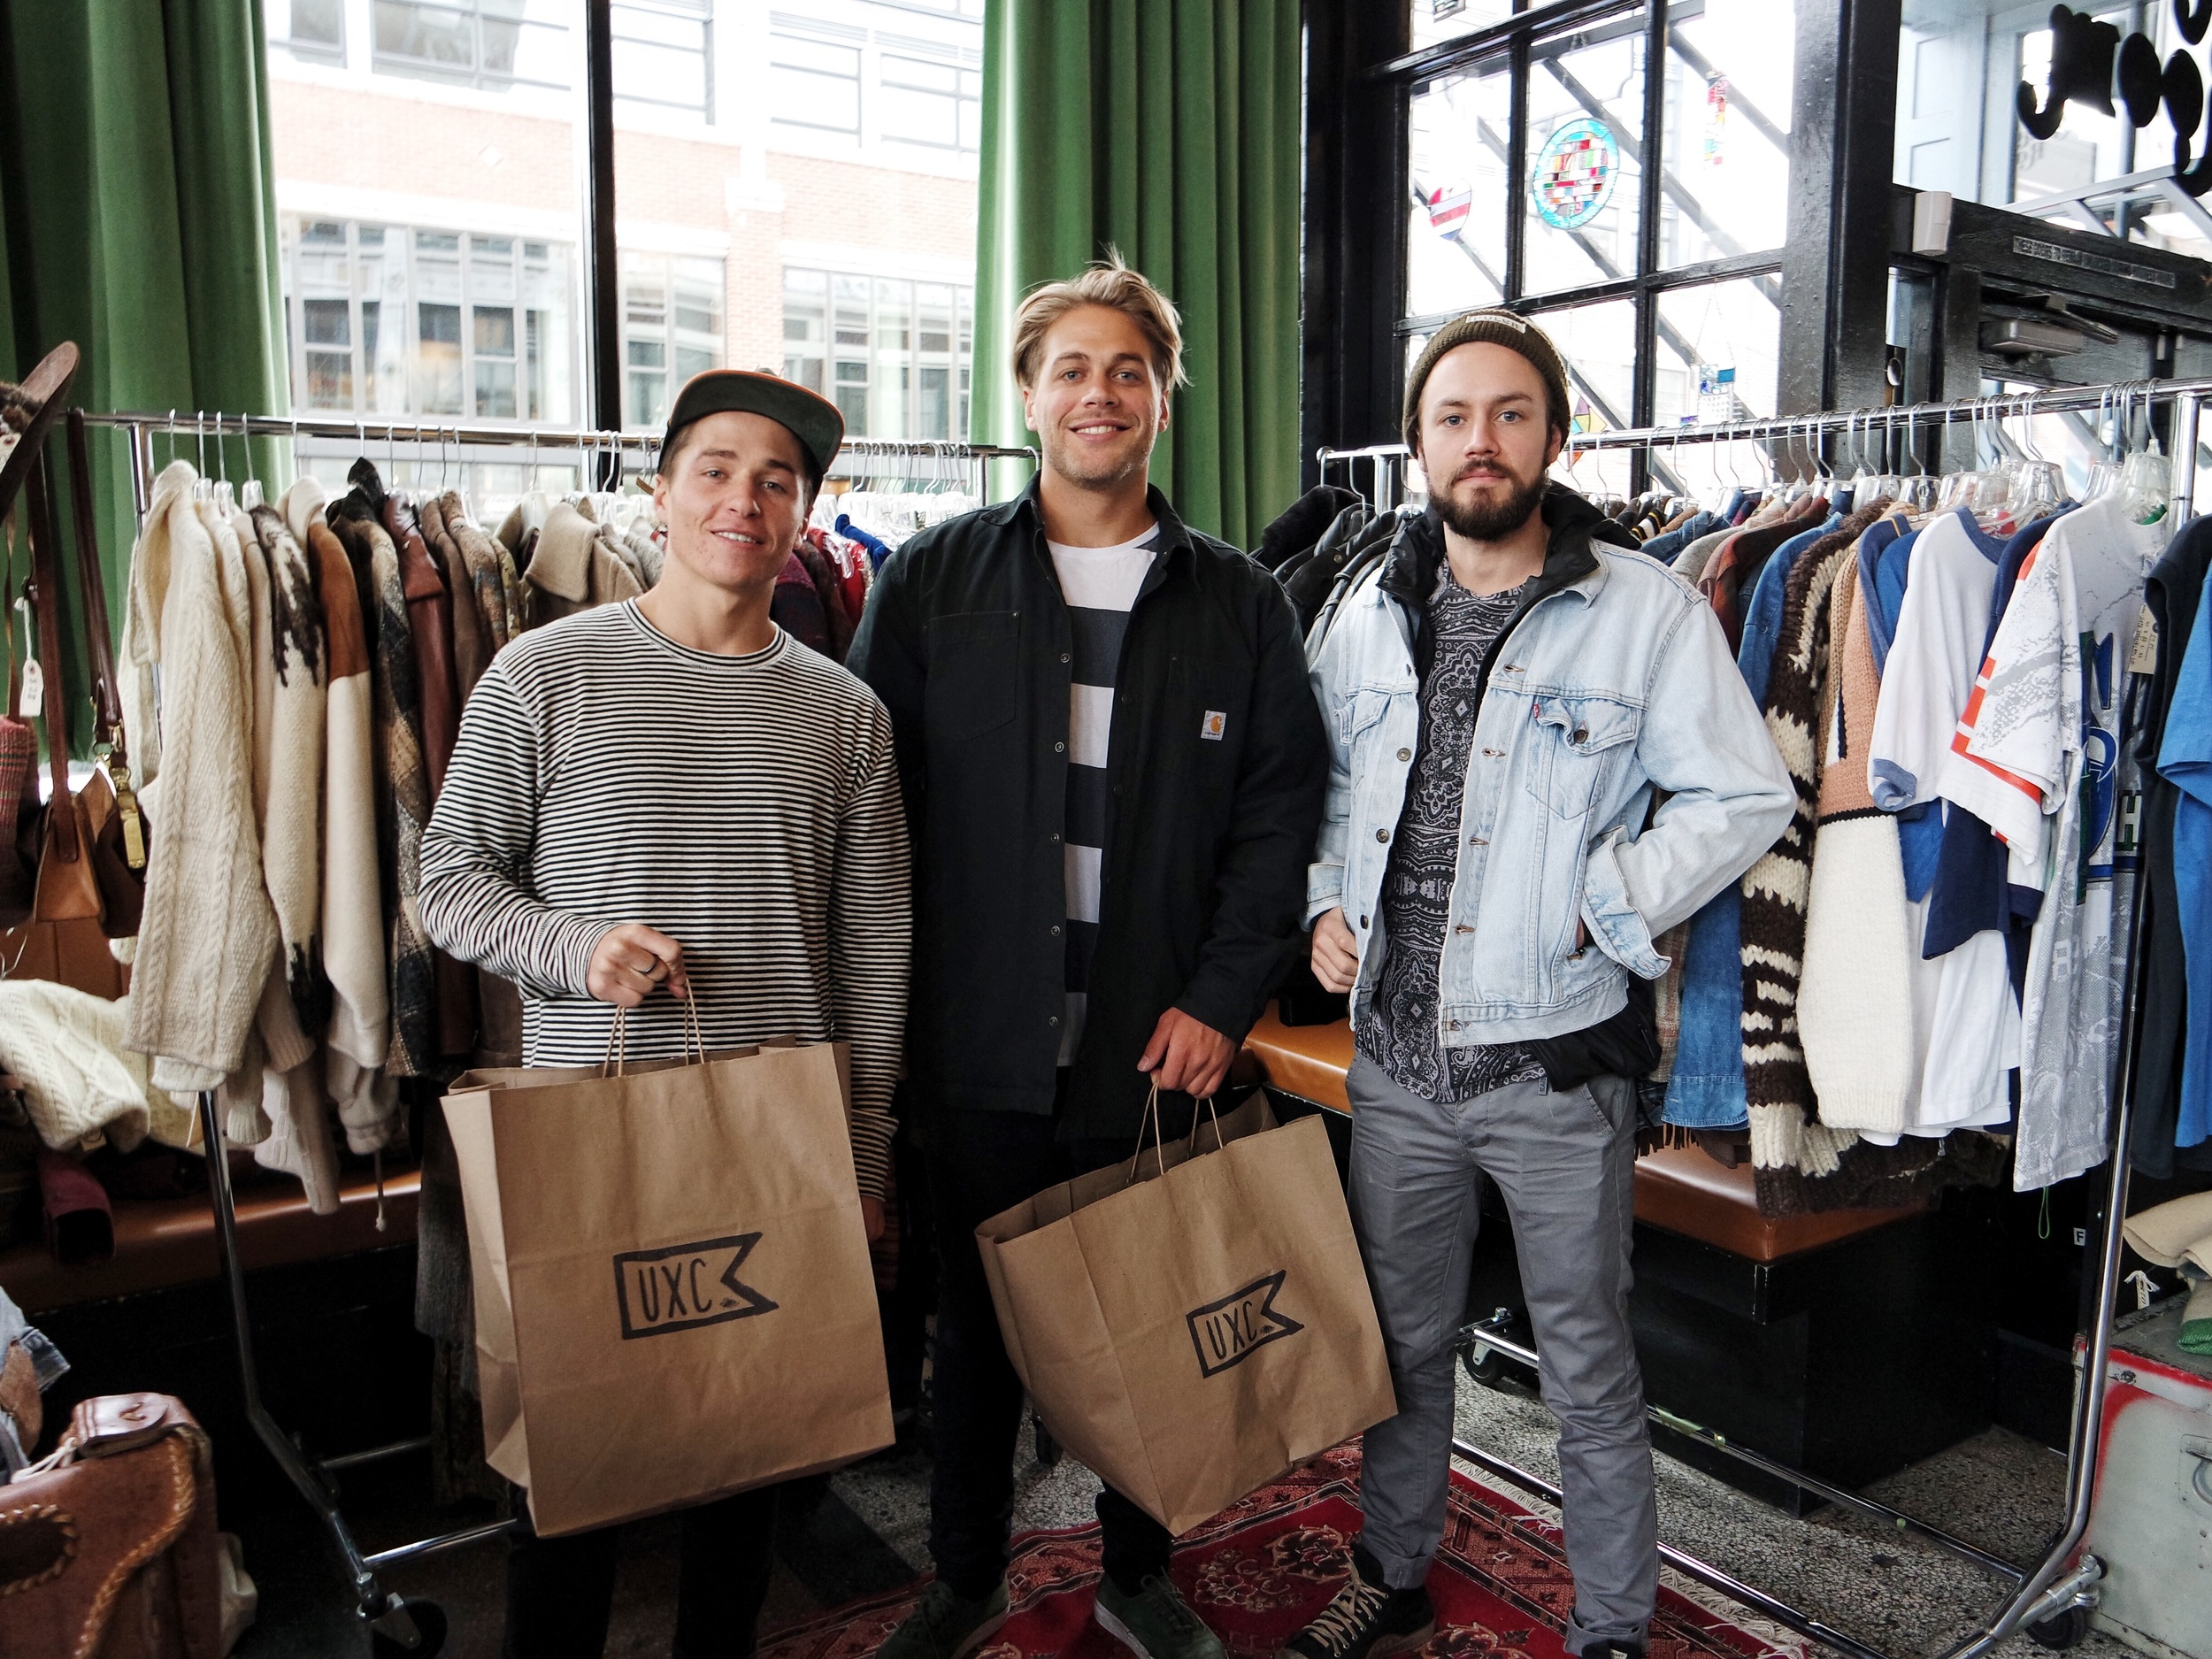 """If I remember correctly these 3 dudes each bought a vintage Levi's denim jacket and rolled out with smiles on their faces! And they were Aussies and super nice. They really liked Brookes """"jumper"""", which means sweater in Australia. Rad dudes."""